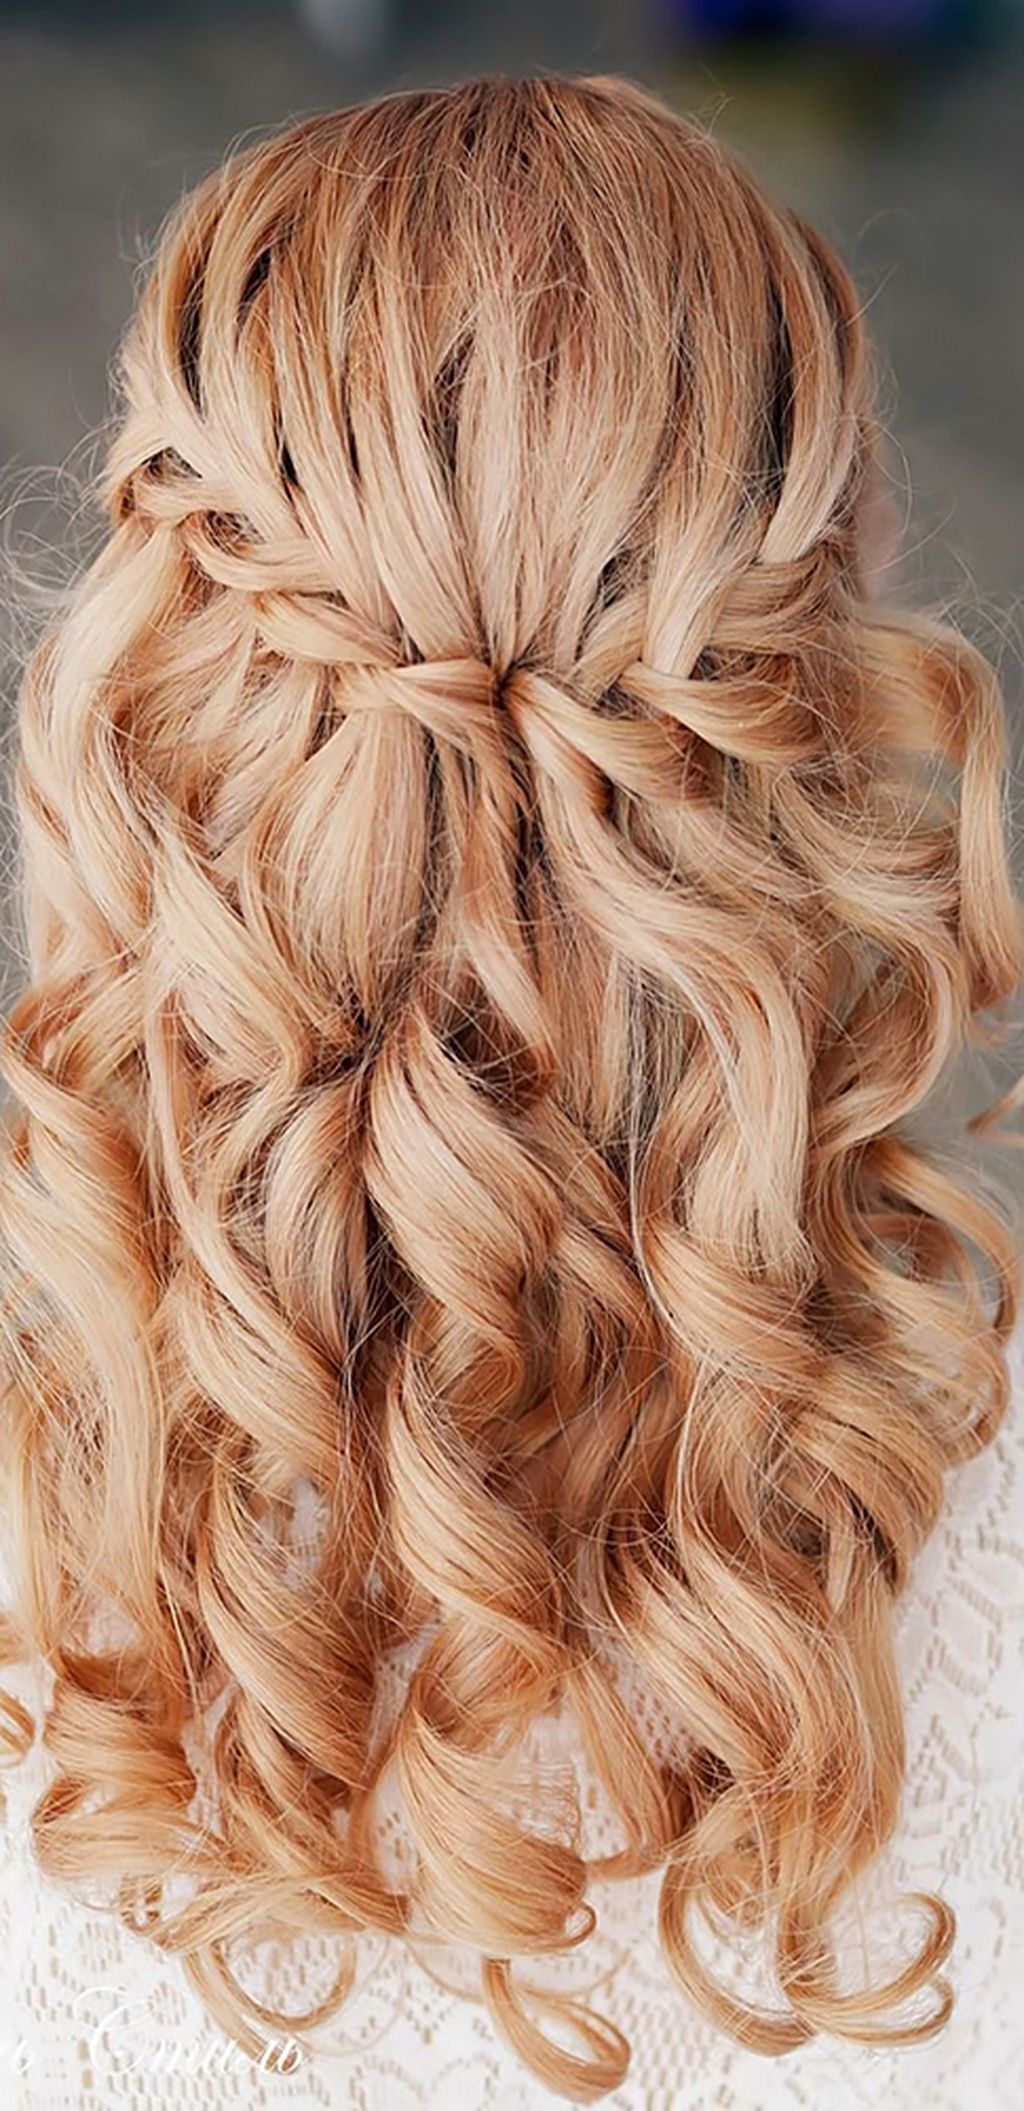 Nice 86 Beautiful And Easy Wedding Hairstyle For Long Hair Https Viscawedding Com 2017 06 06 86 Beaut Hair Styles Unique Wedding Hairstyles Long Hair Styles